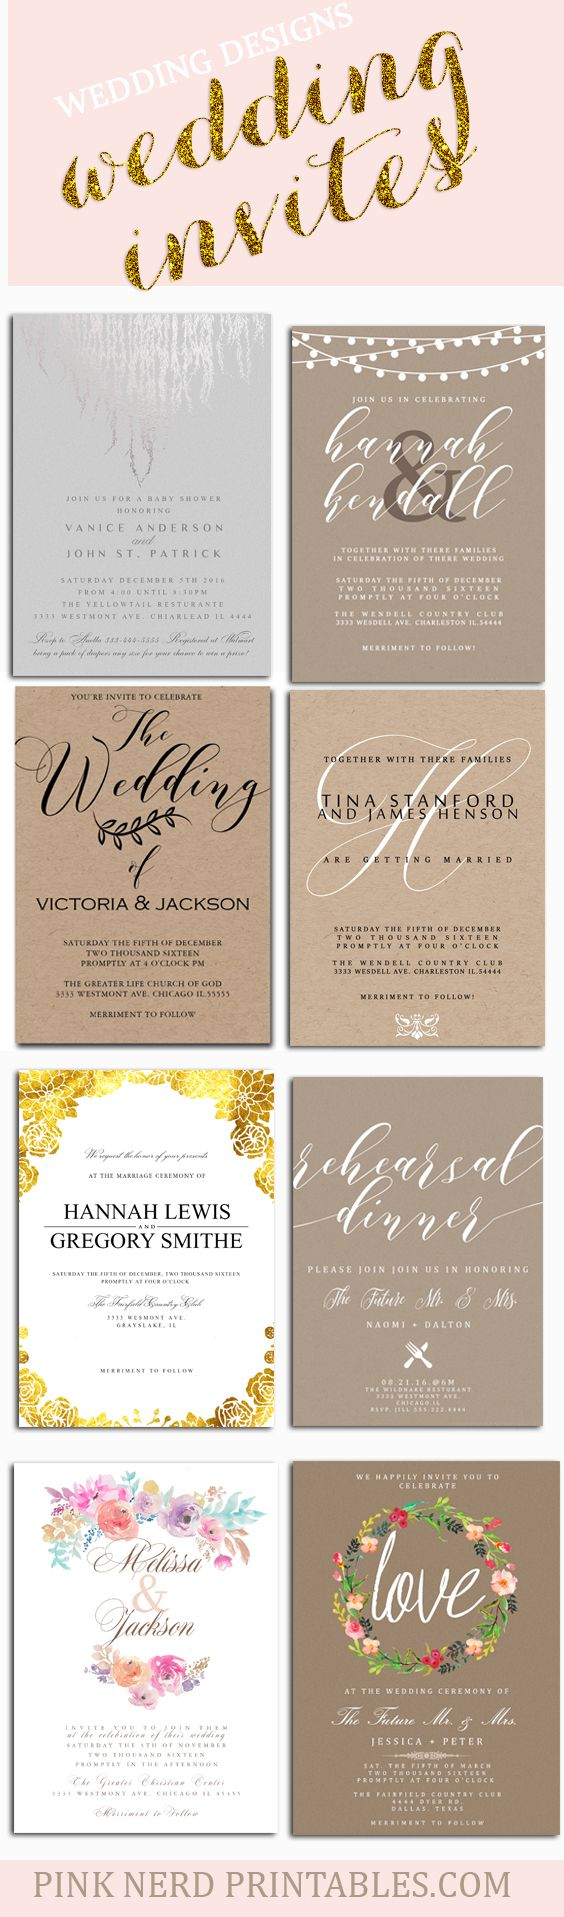 Wedding invitations, cheap wedding invitation, elegant wedding invitation, wedding , rehearsal dinner, save the dates, menus ect rustic invitation, rustic theme, rustic wedding, wedding invitations, invites, party planner, winter, summer , fall , invite